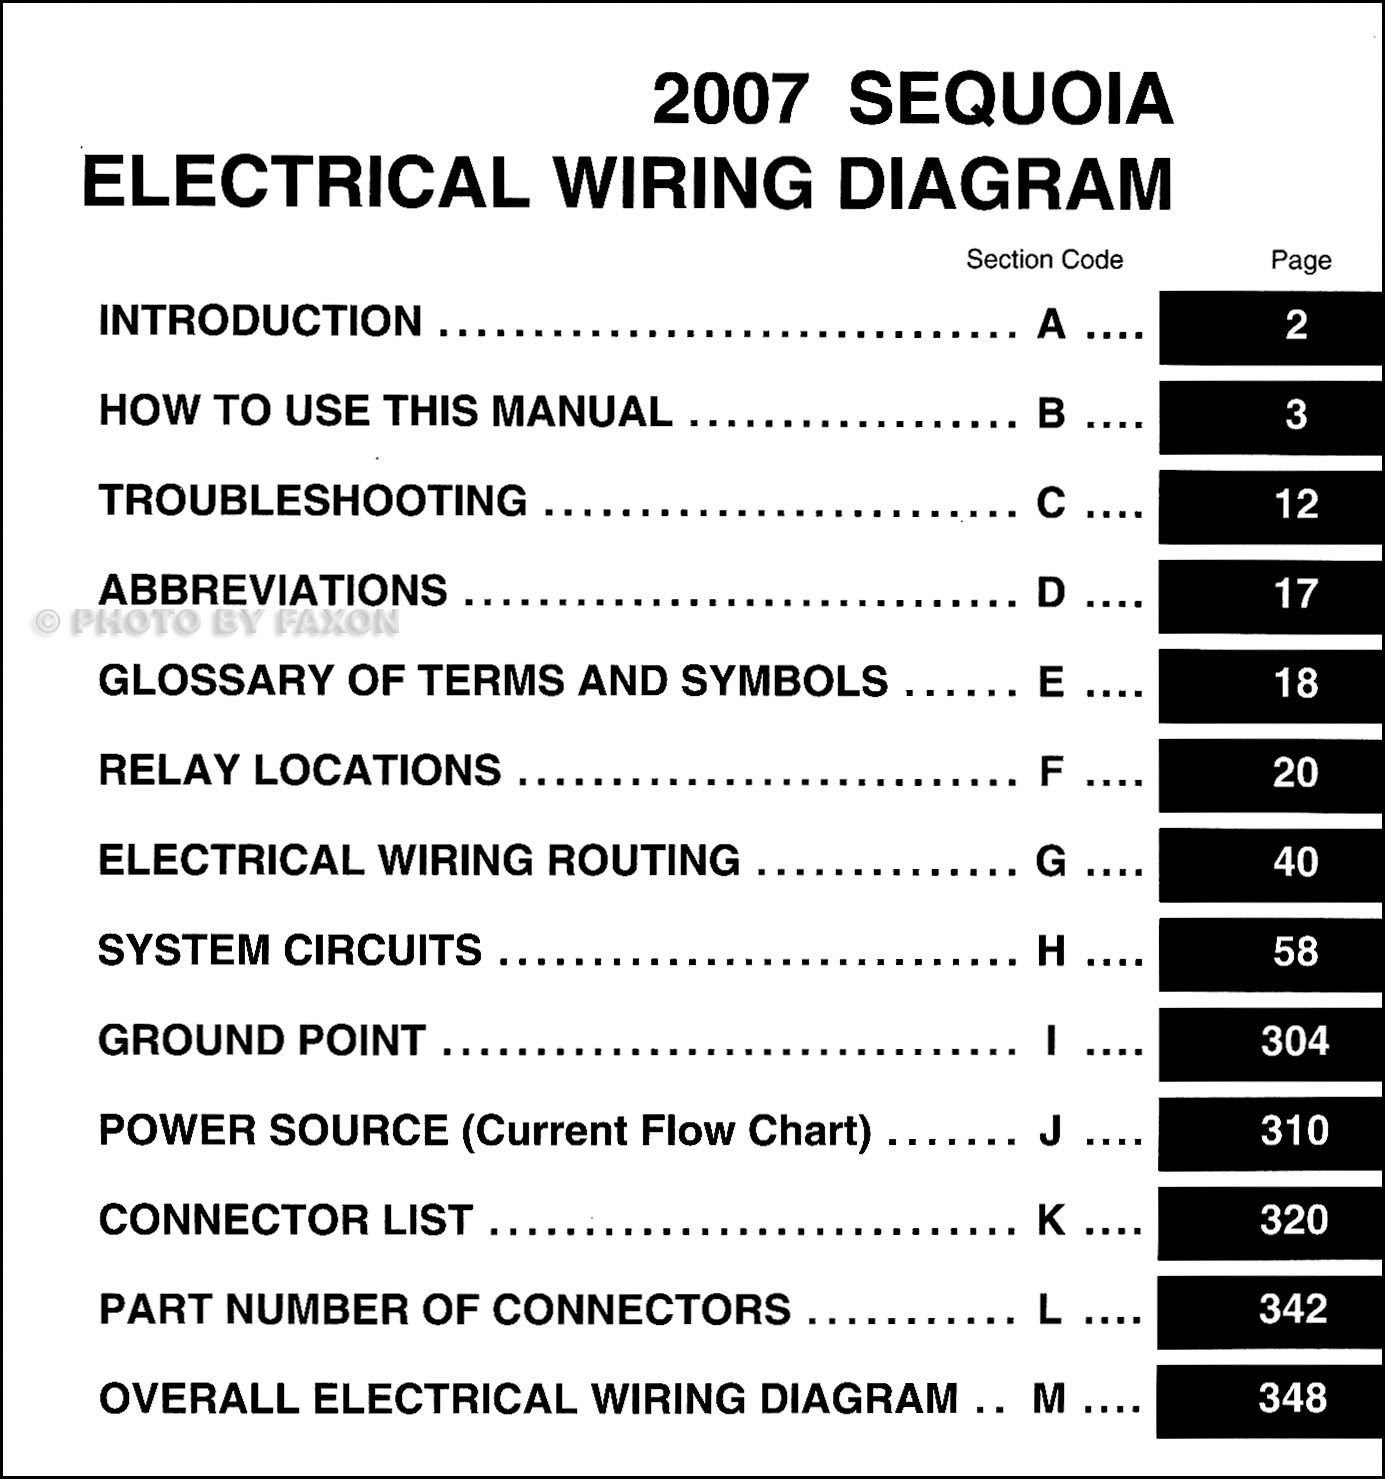 3 Way Switch Wiring 2002 Silverado Interior Wiring Diagram Html Hd Quality Lung Diagram Zontaclubsavona It